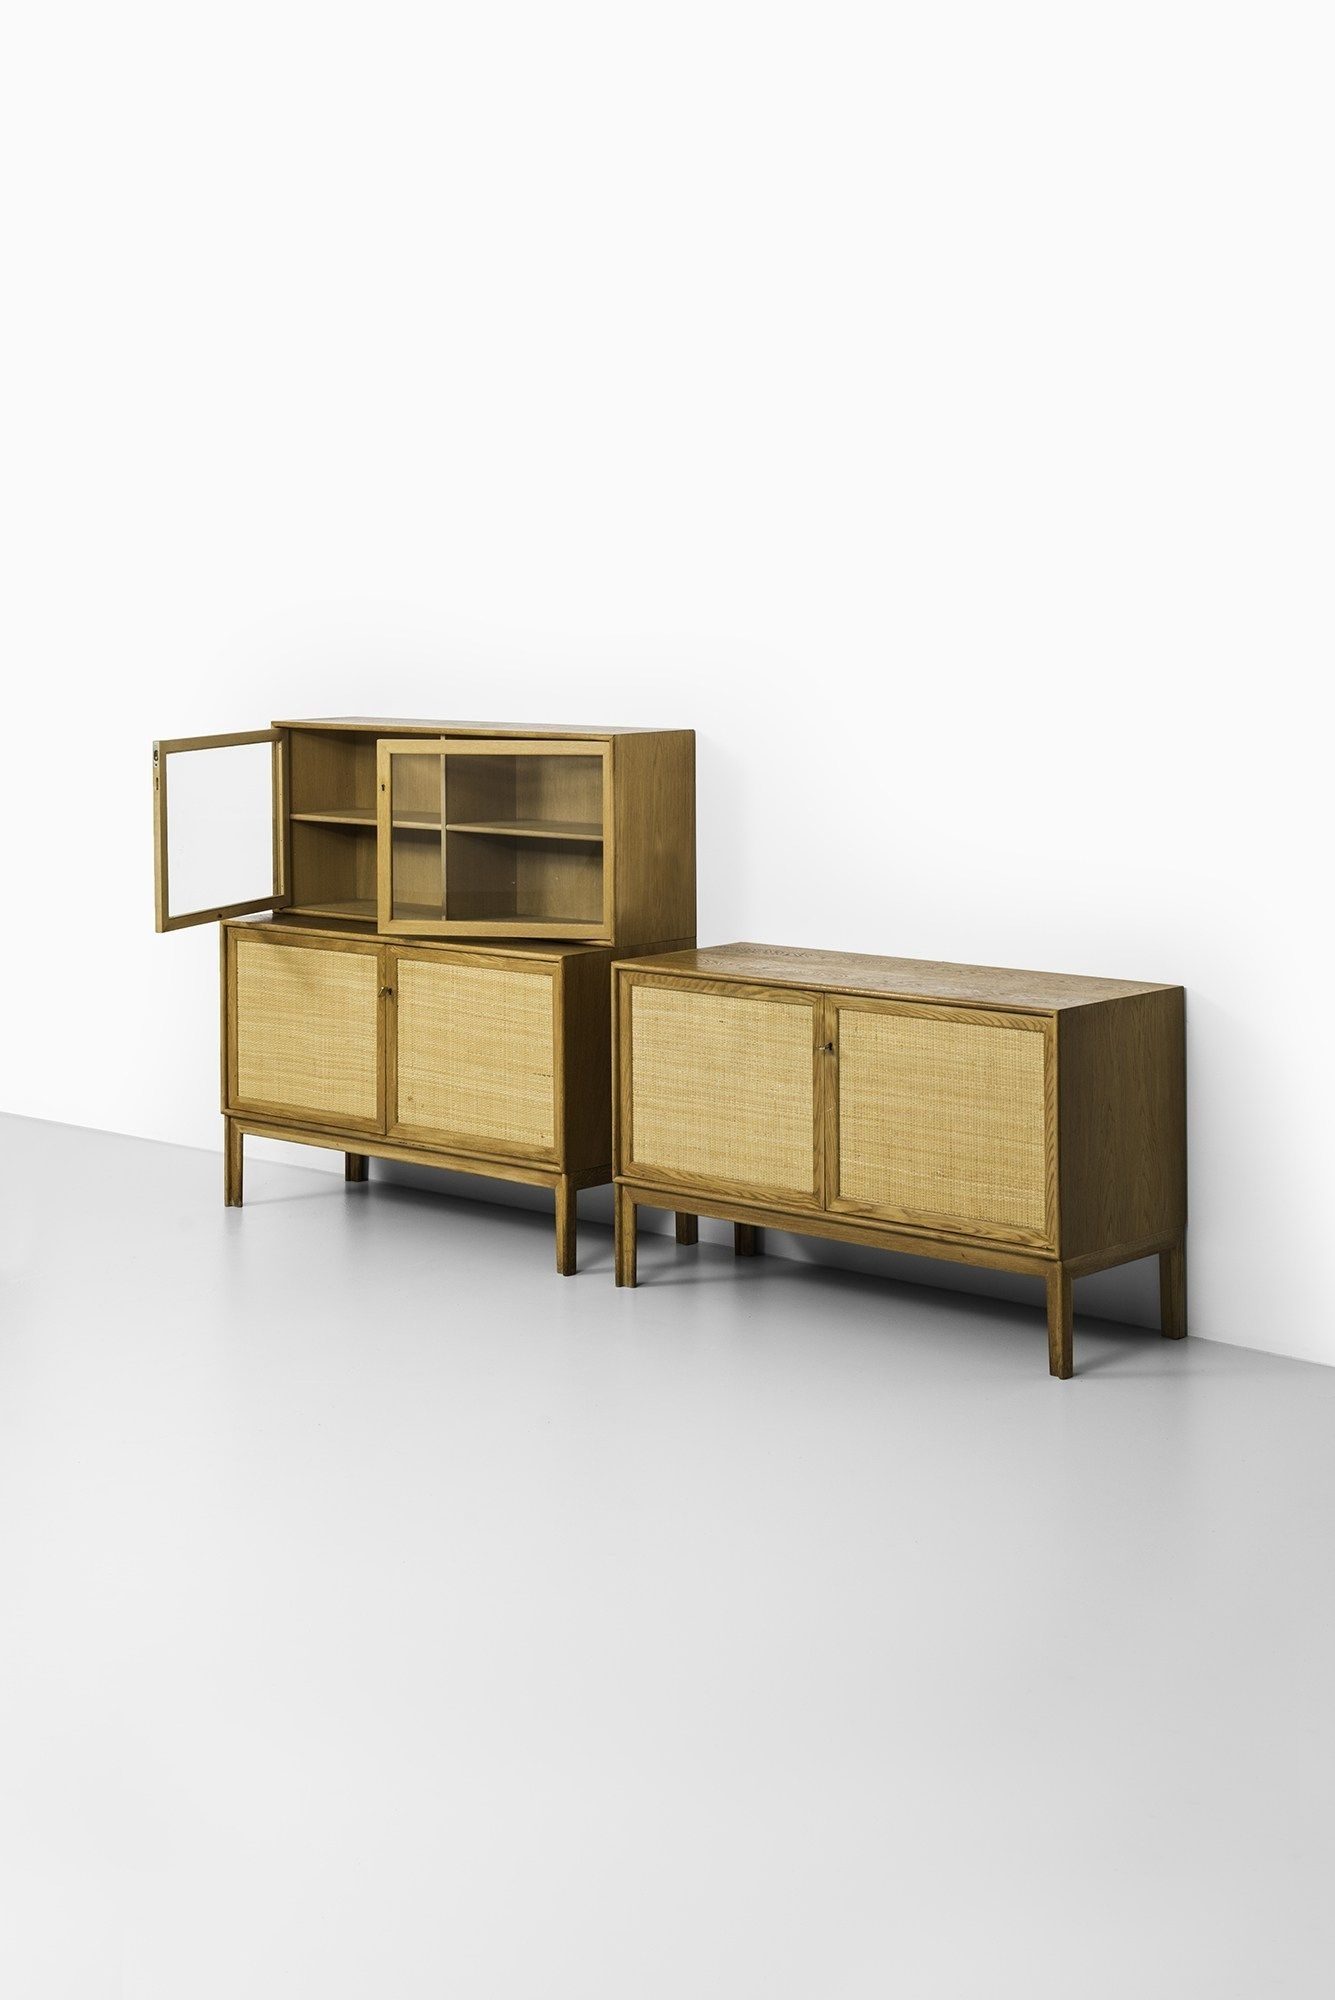 Sold | Woven Cane Furniture & Objects | Pinterest | Sideboard with regard to Parrish Sideboards (Image 25 of 30)